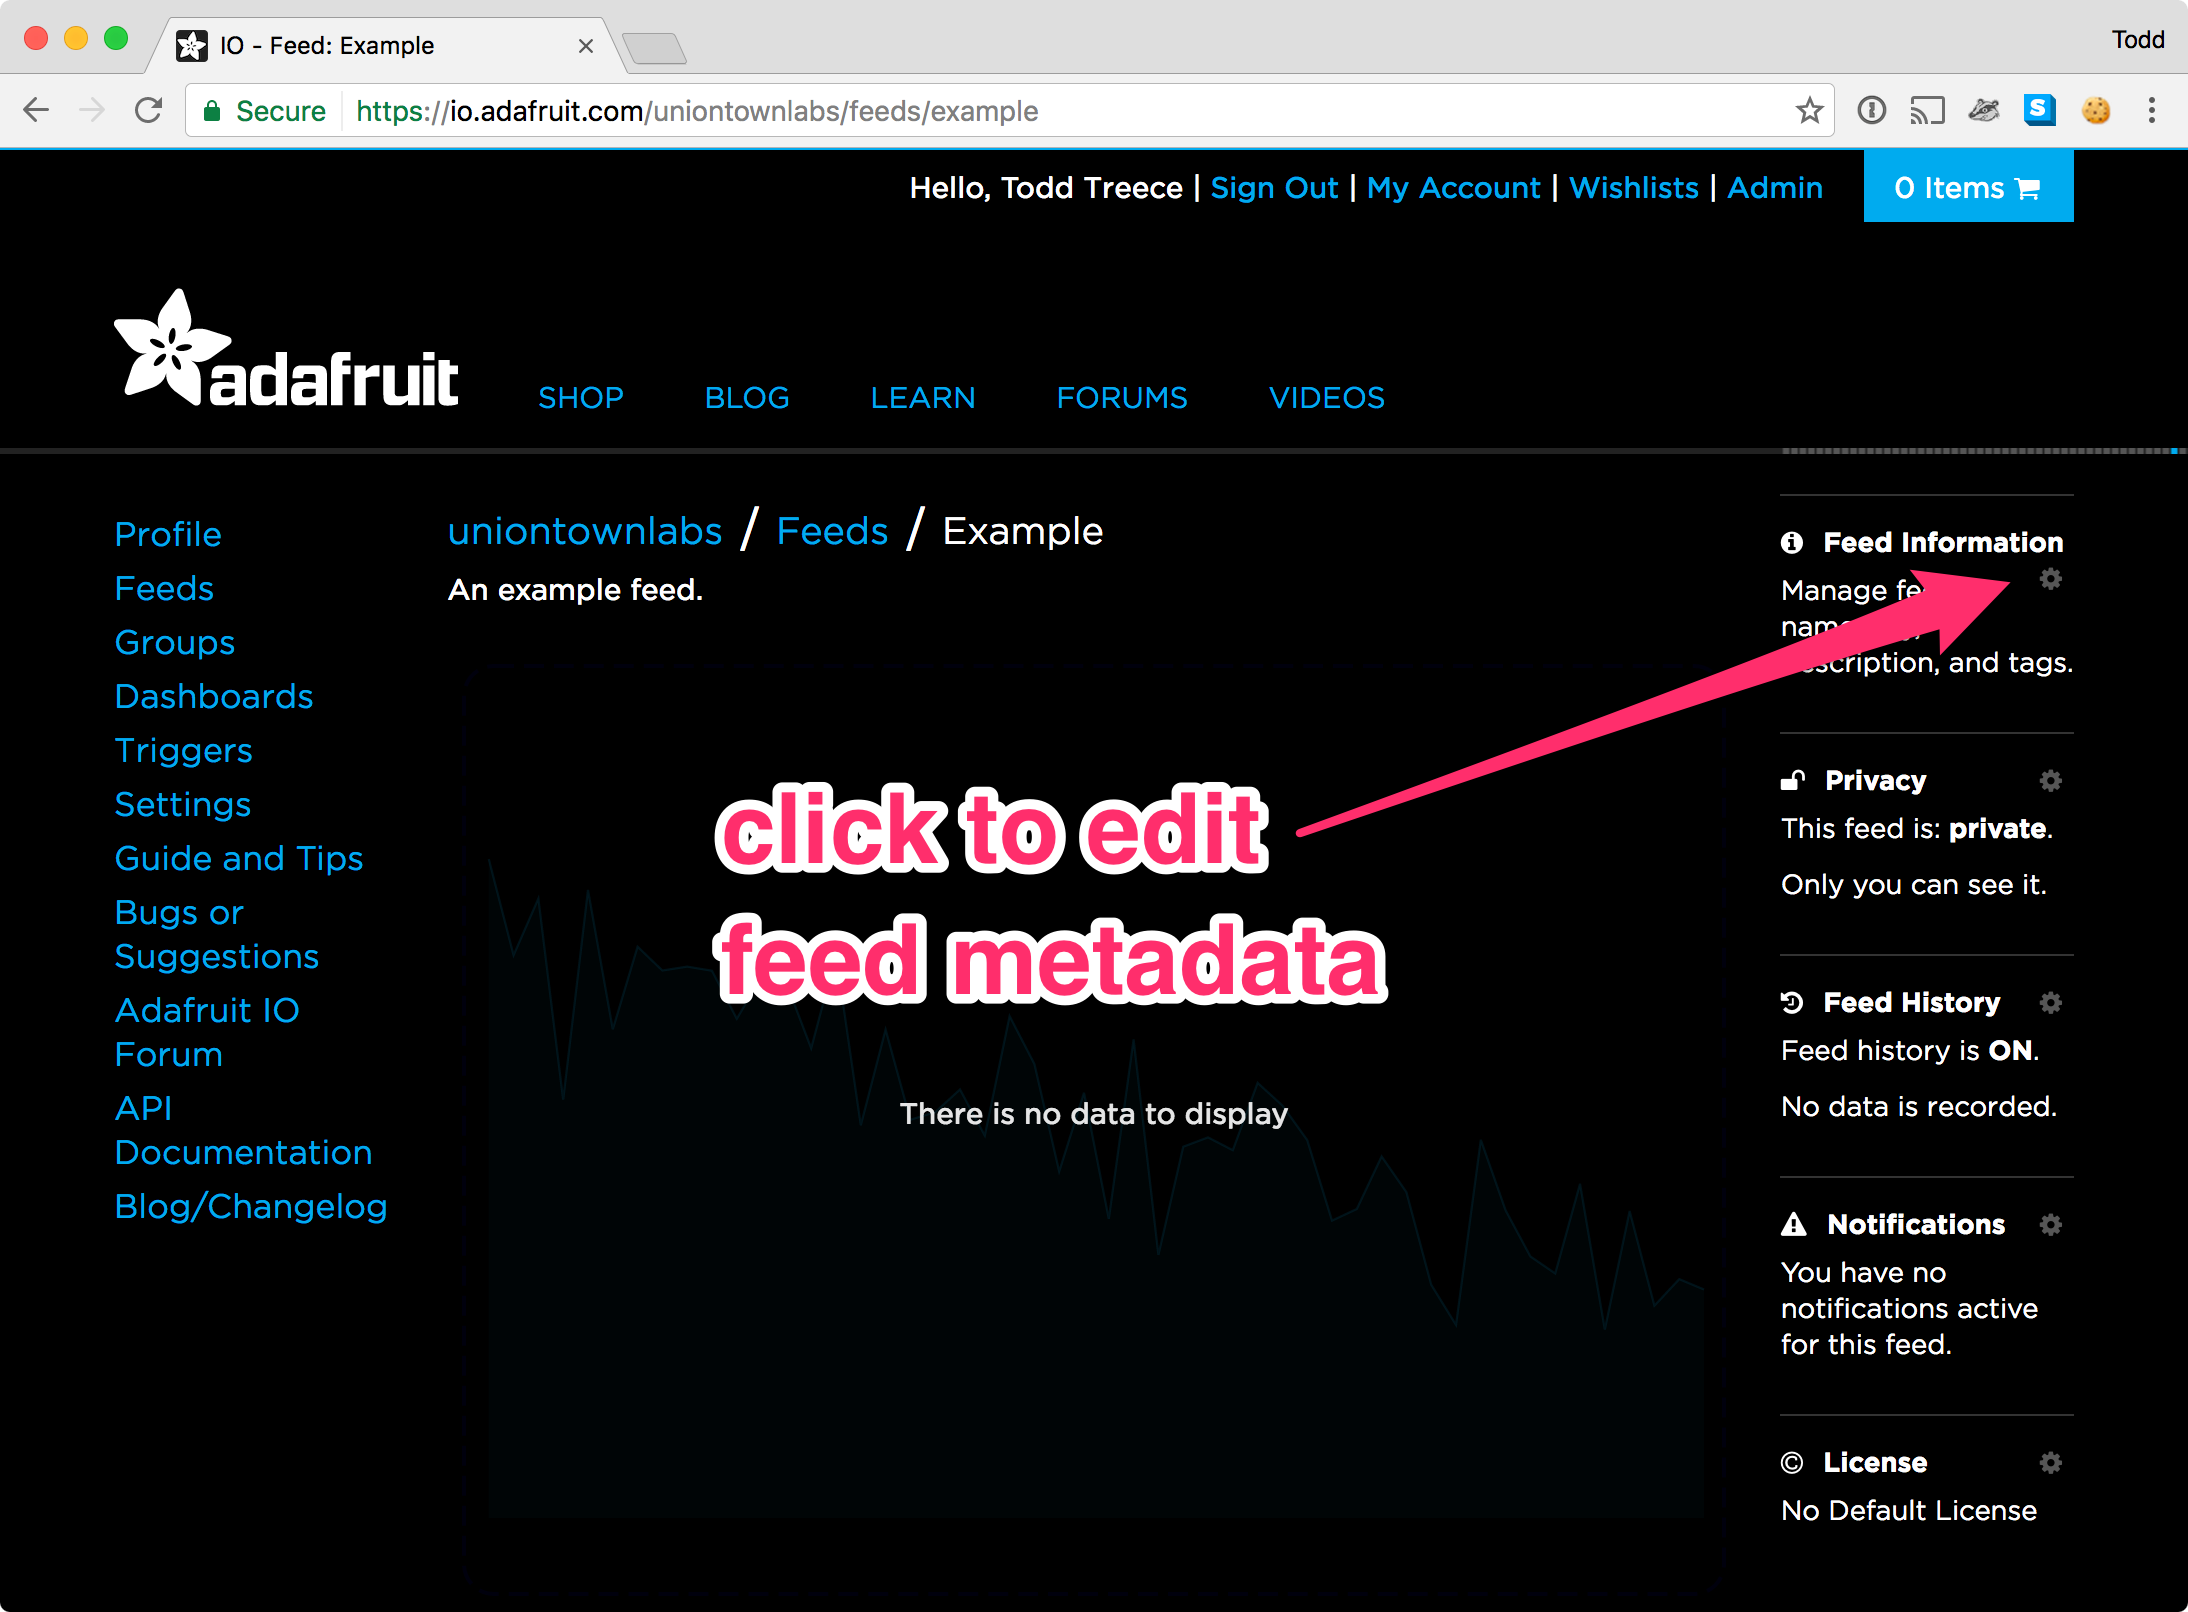 adafruit_io_05_feed_edit.png